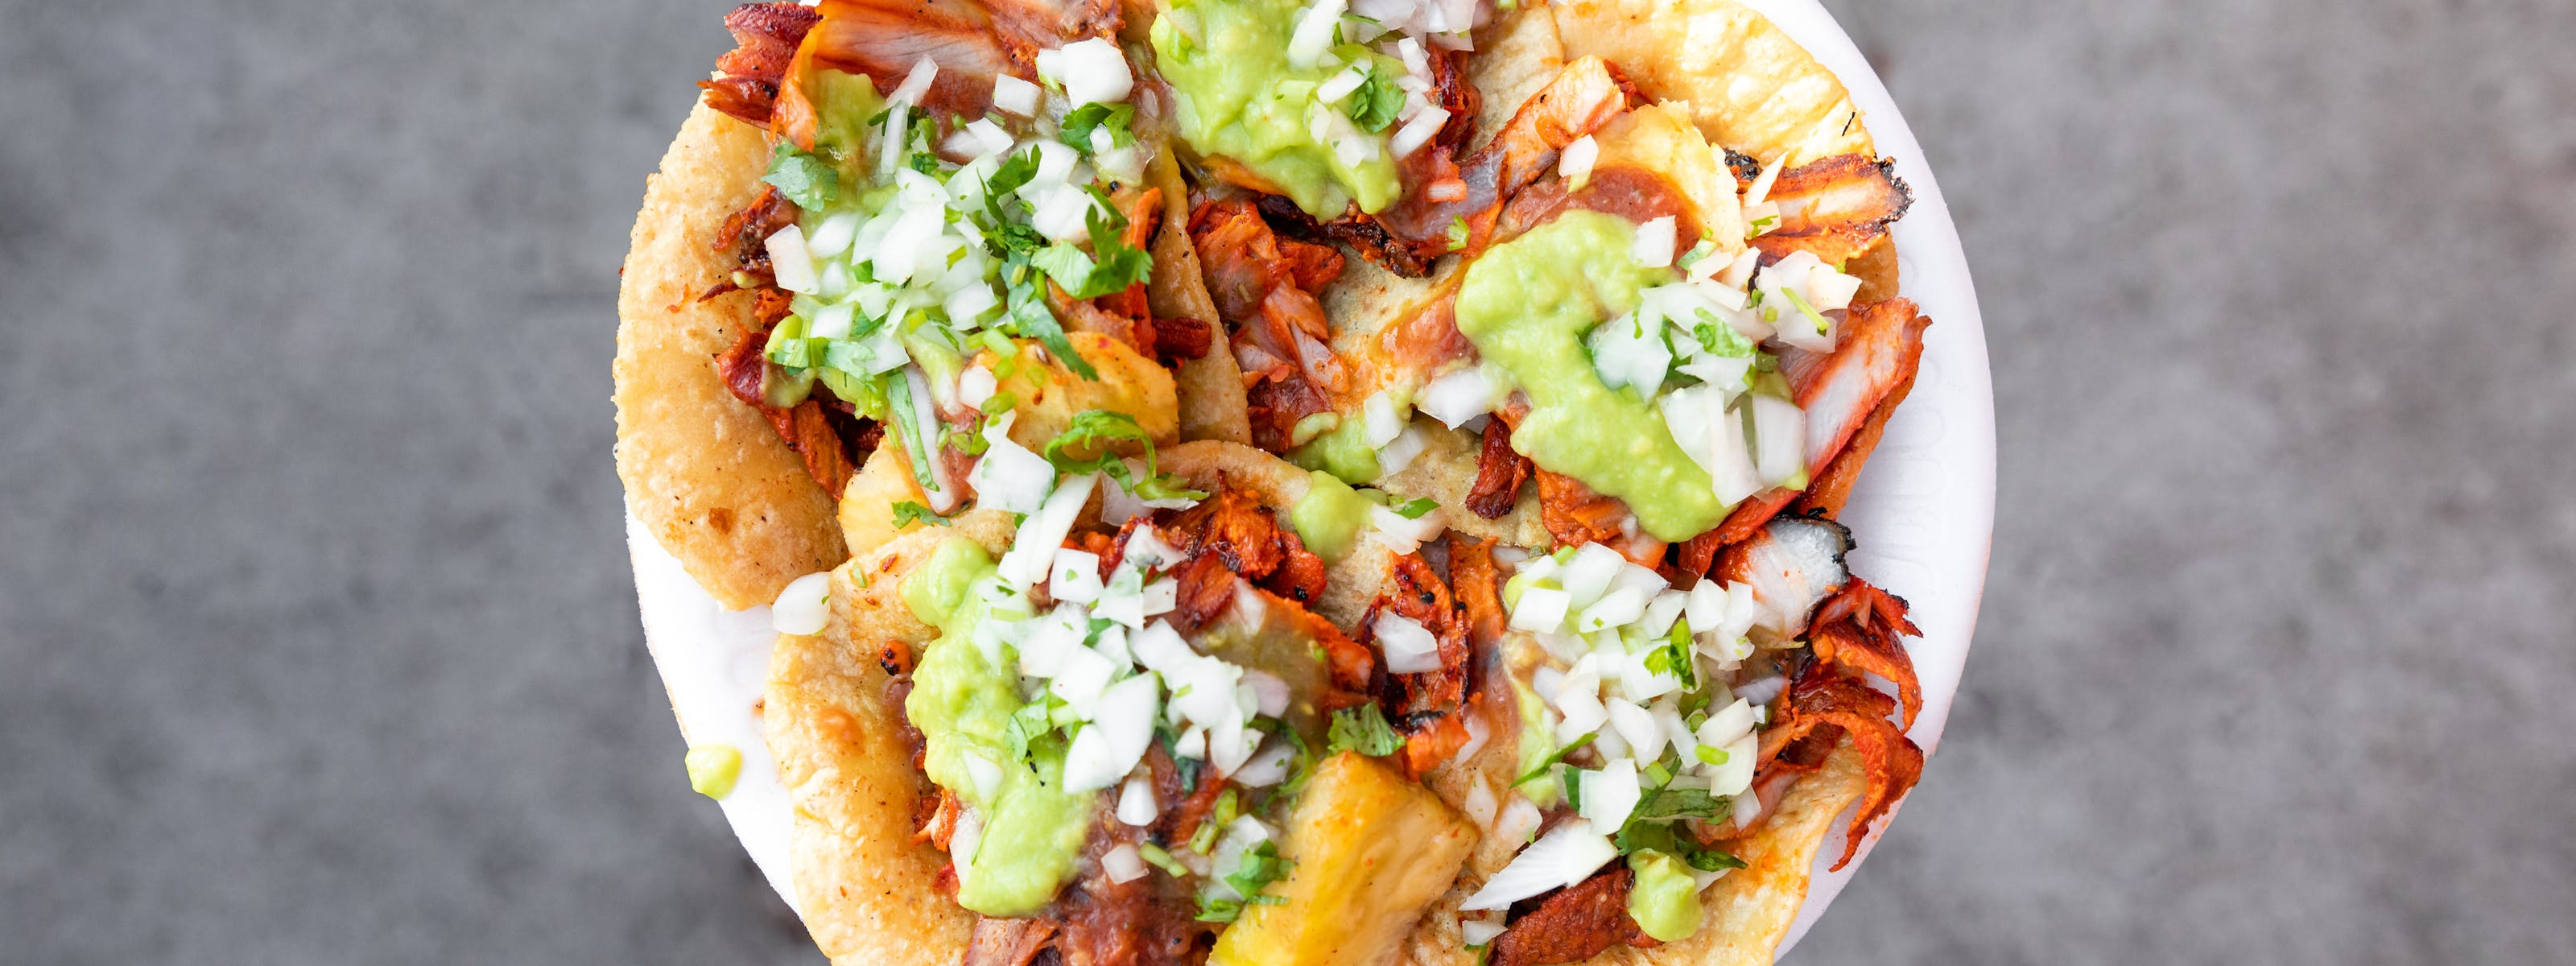 The Best New Tacos In LA - Los Angeles - The Infatuation